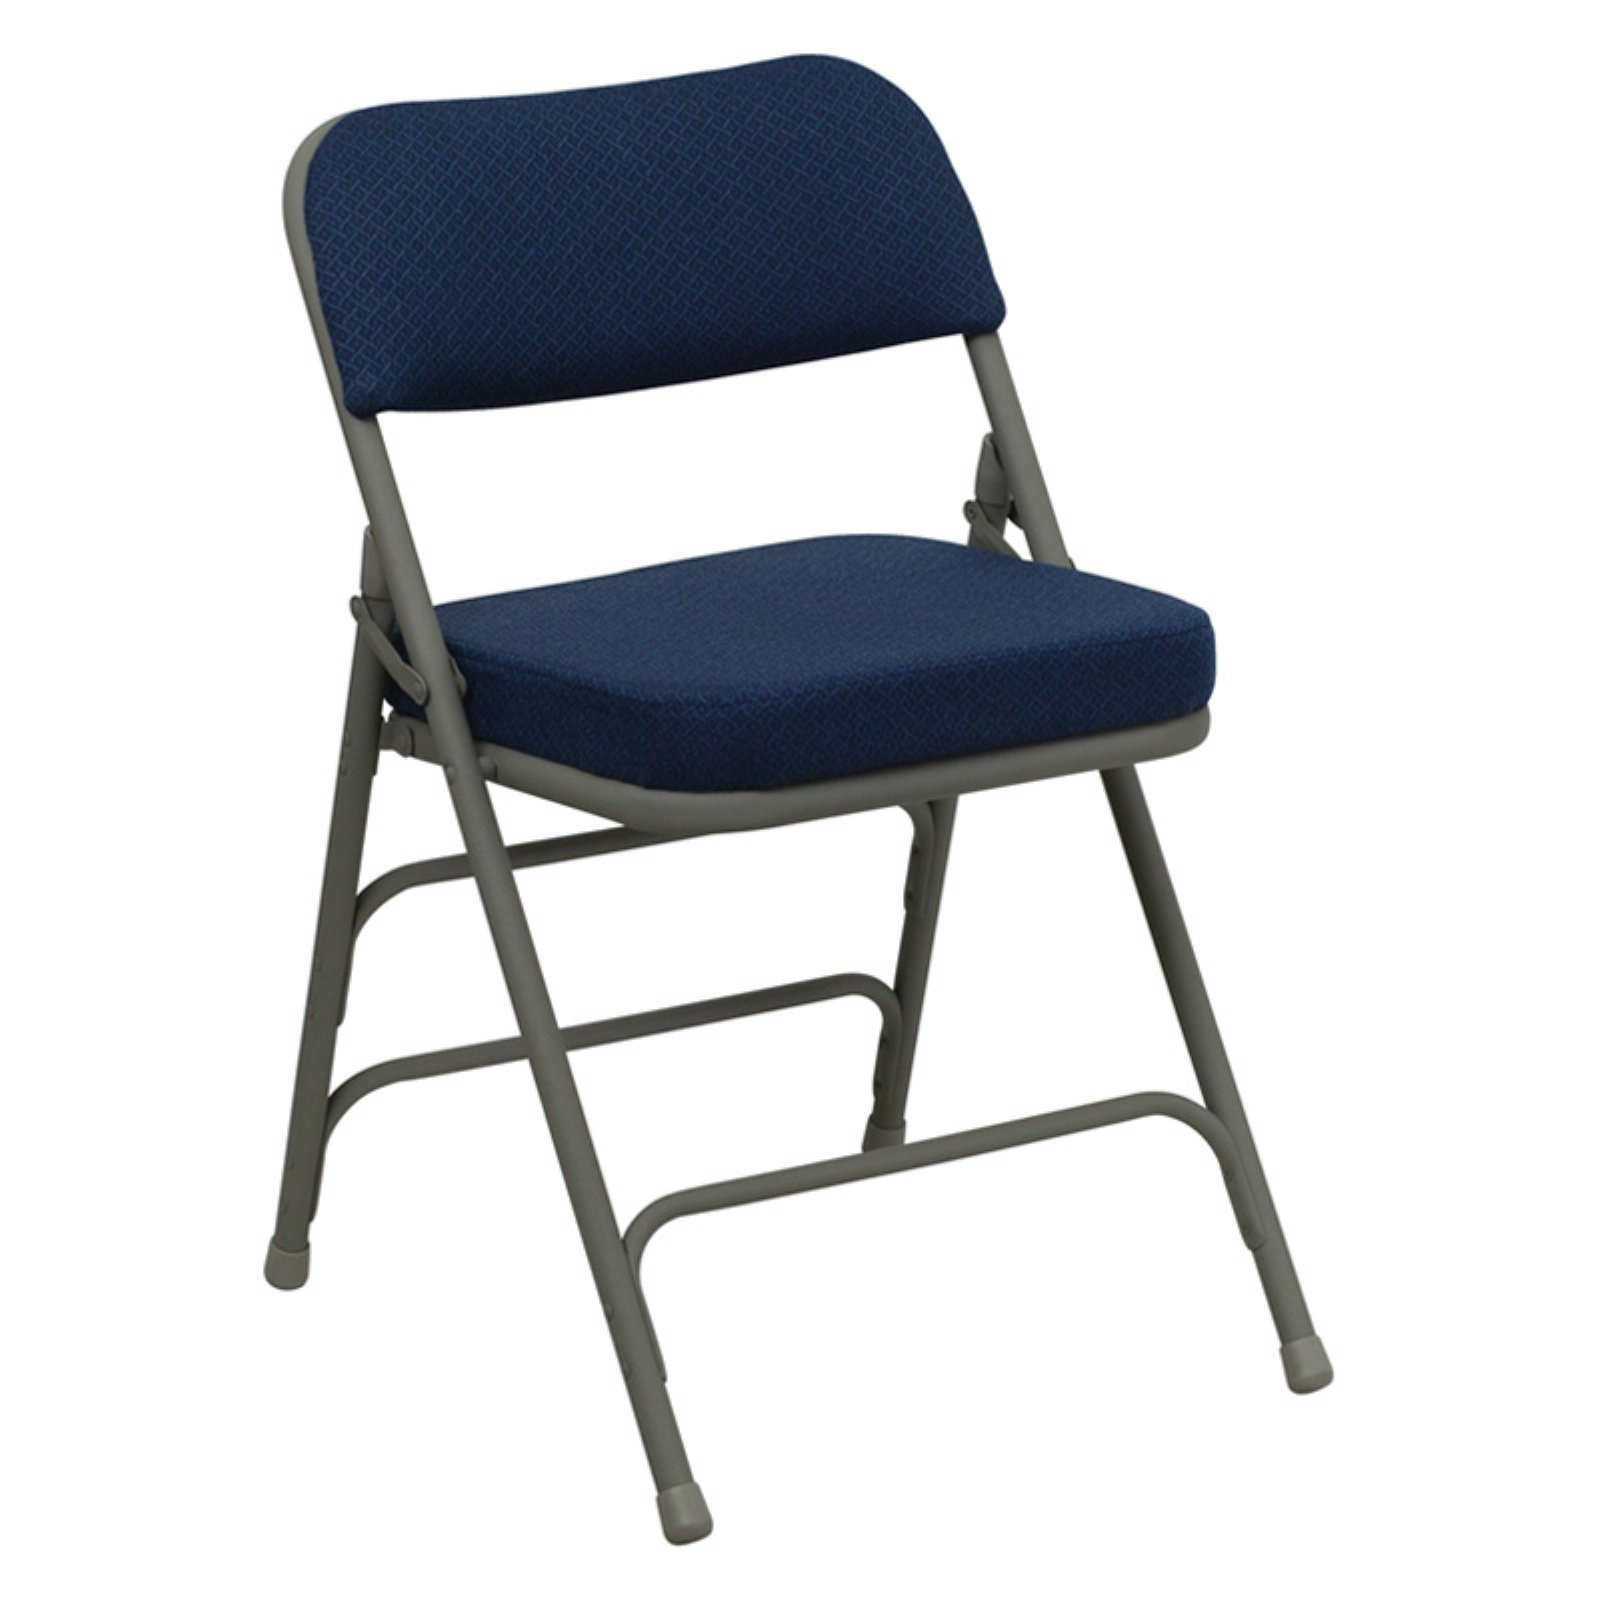 folding chairs for sale egg desk chair cheap flash furniture hercules series premium curved triple braced and double hinged fabric upholstered metal multiple colors walmart com